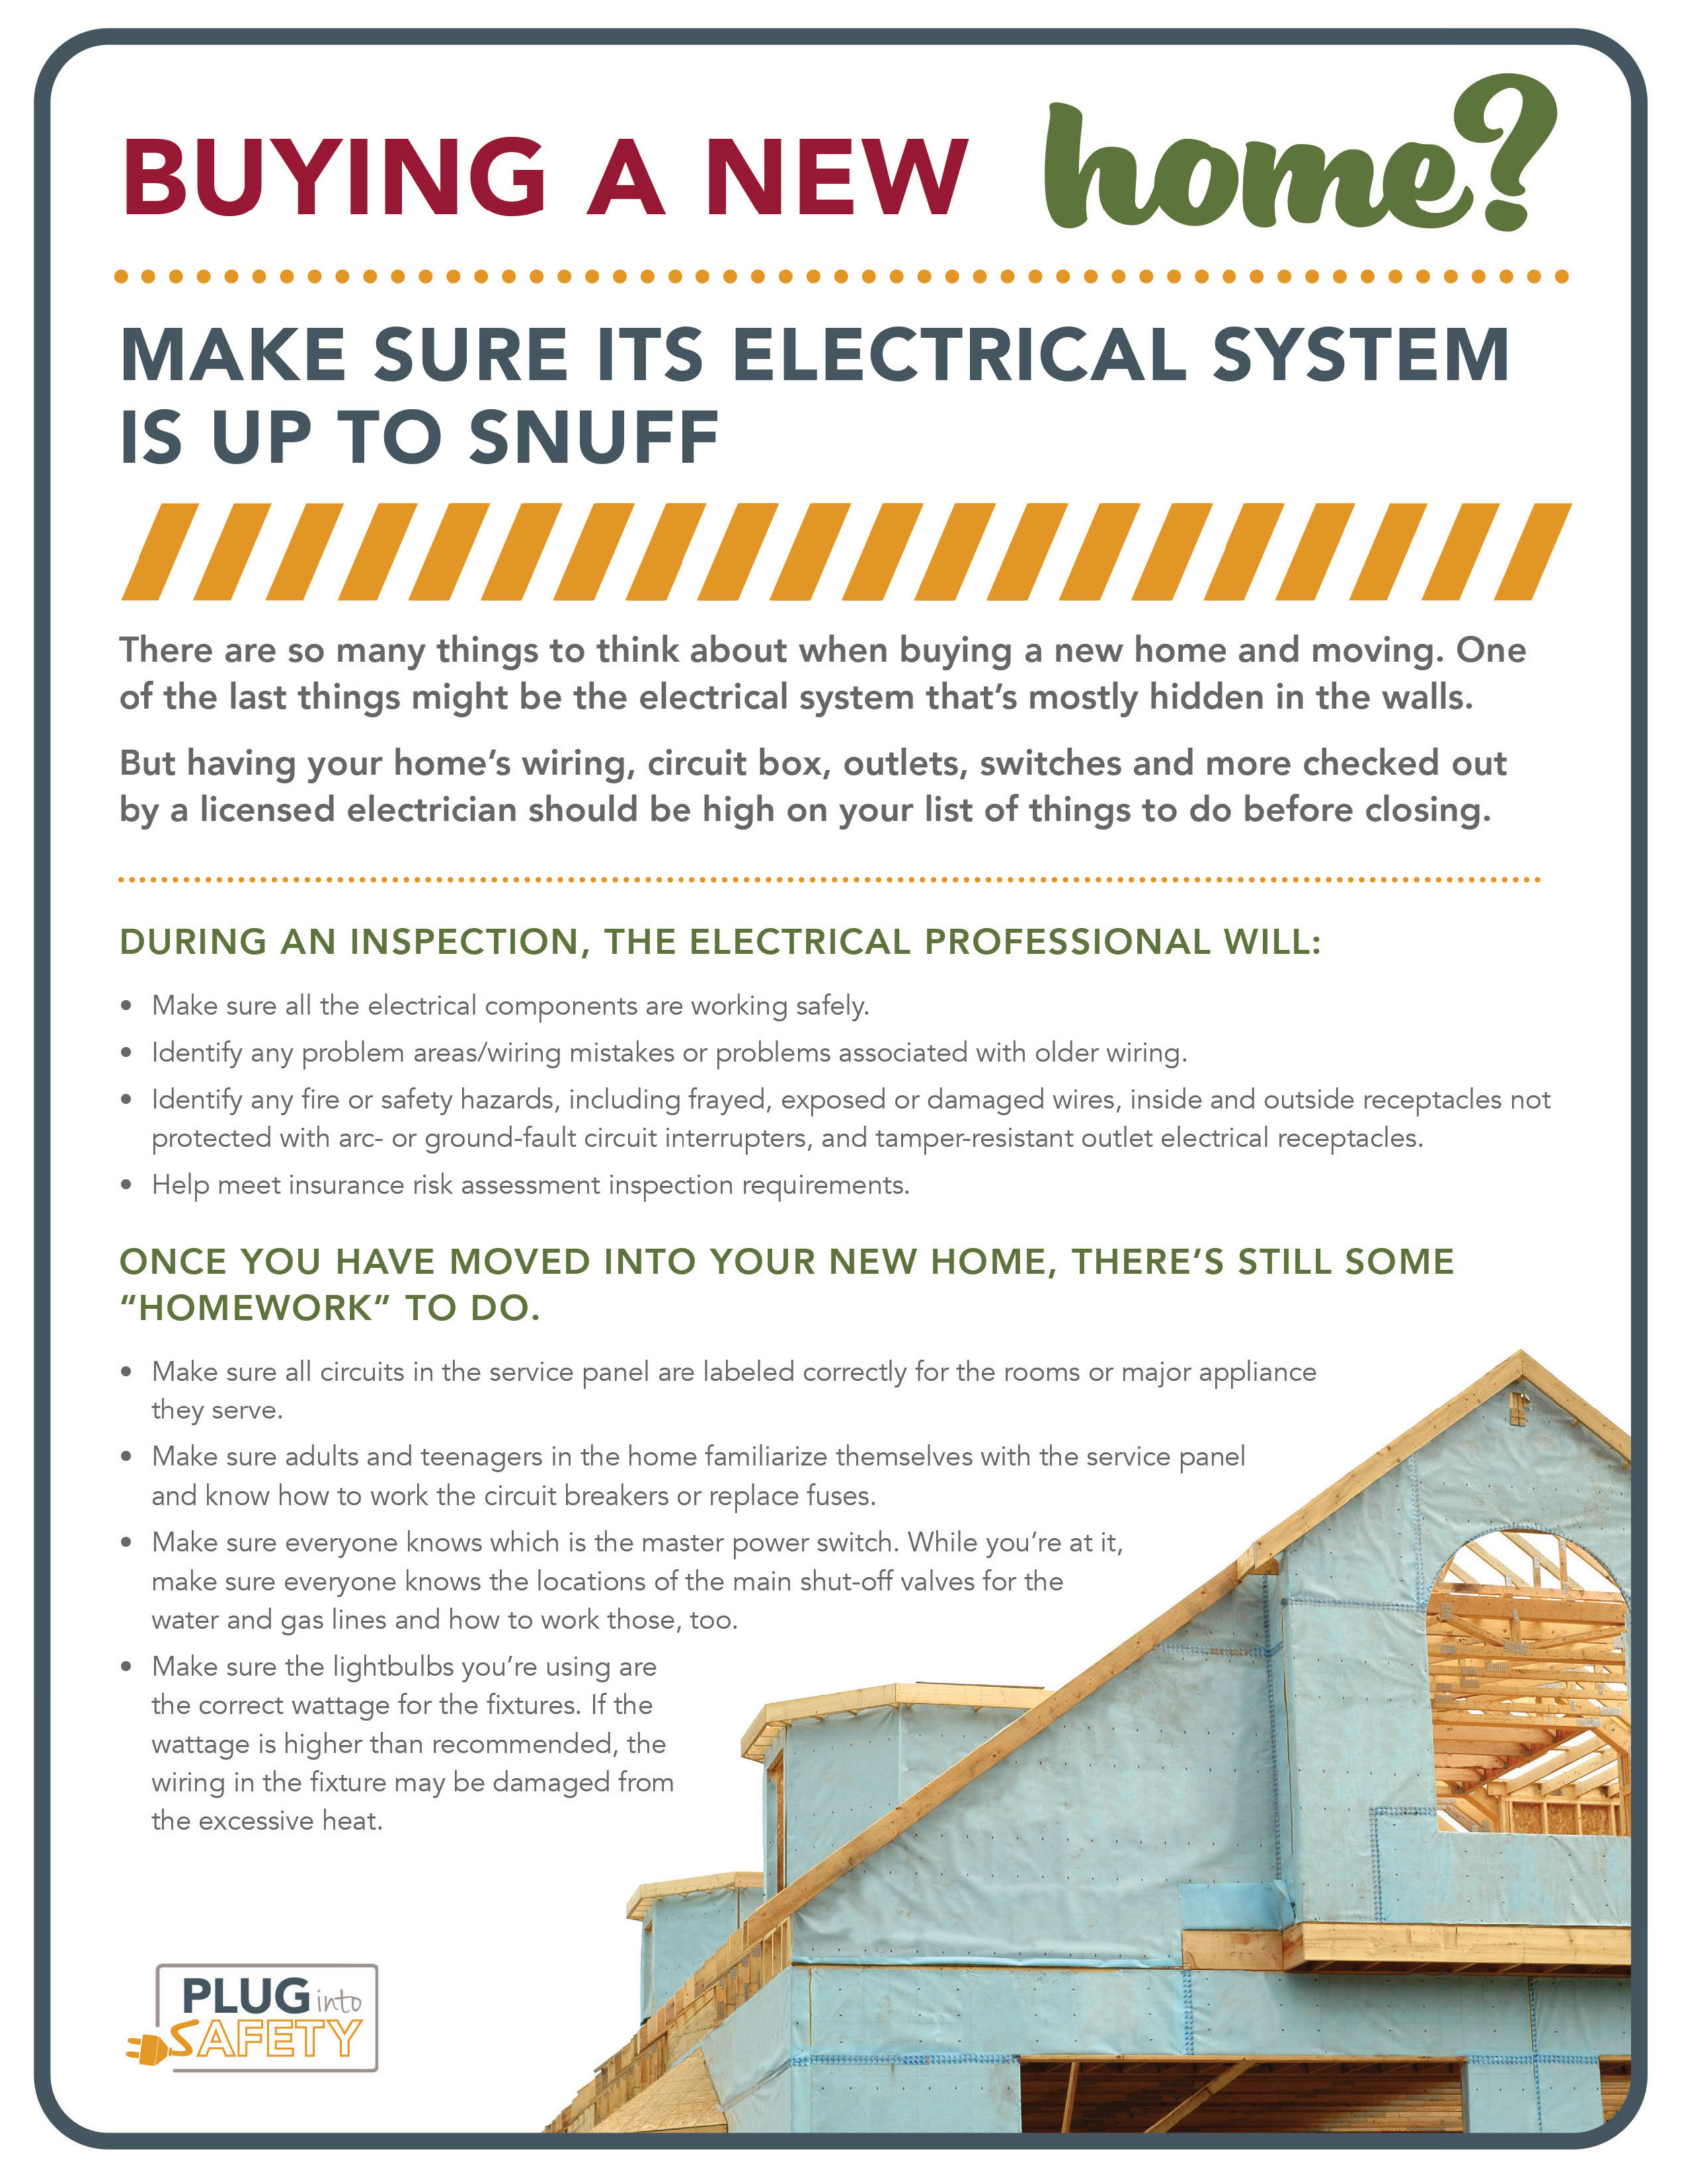 Infographic on electrical safety when buying a new home